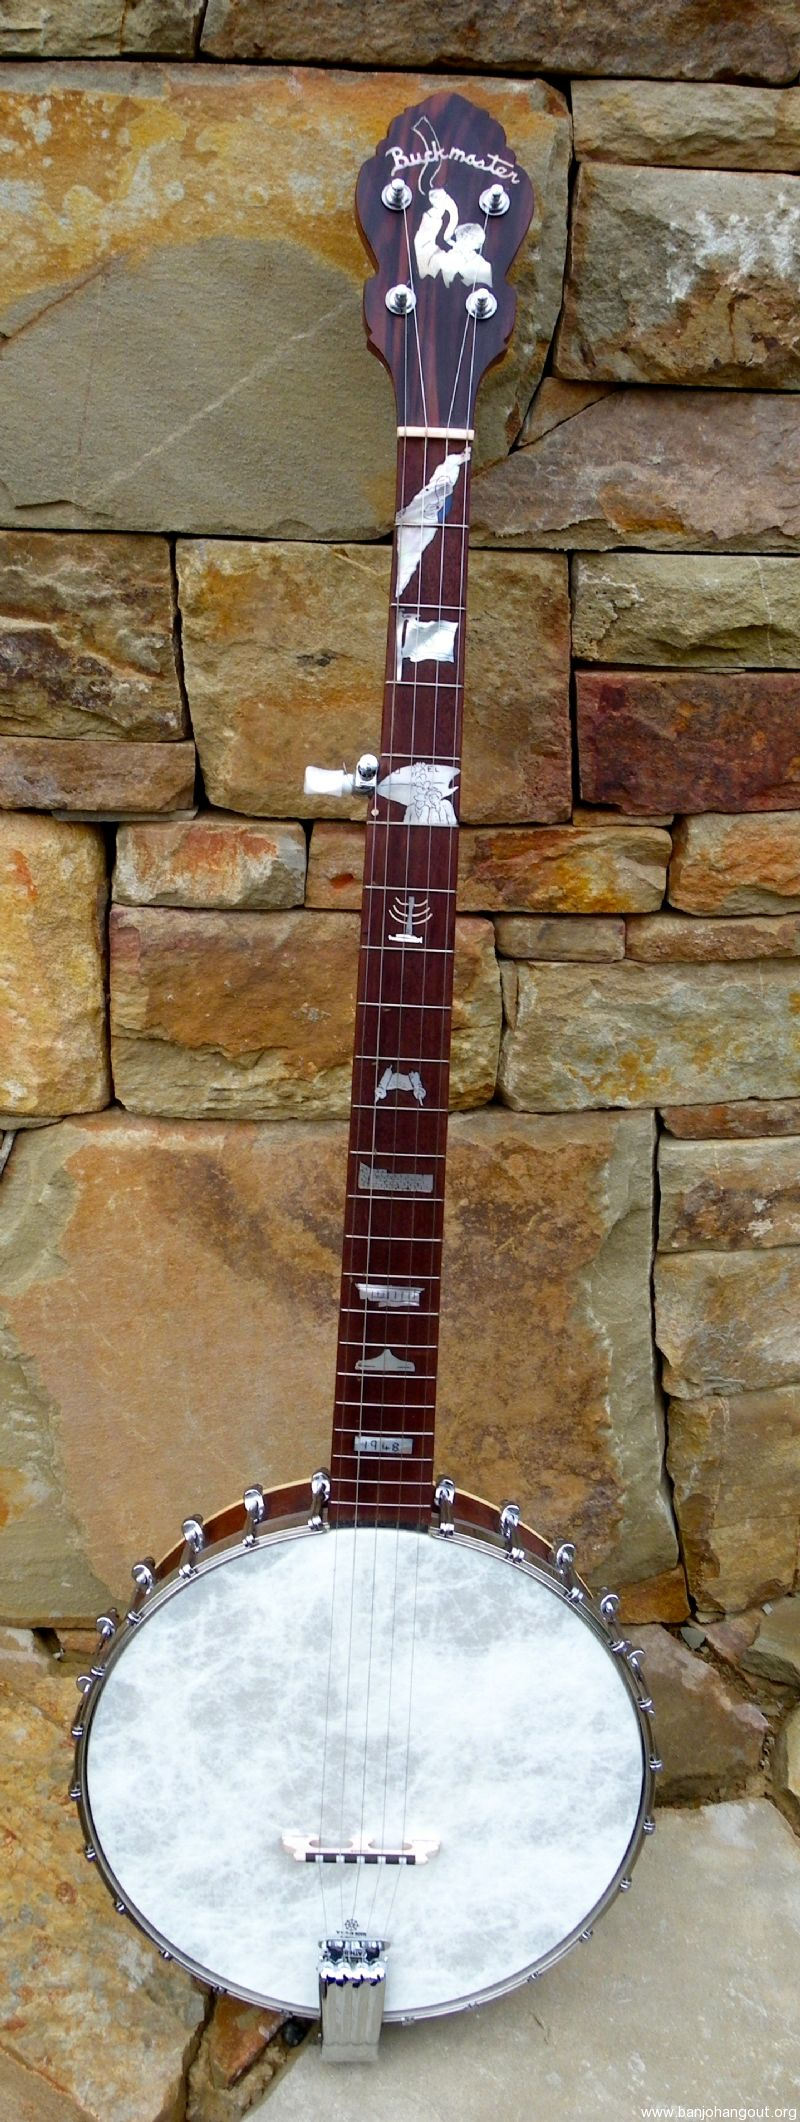 Buckmaster 5 string open back,State of Israel theme inlays  - Used